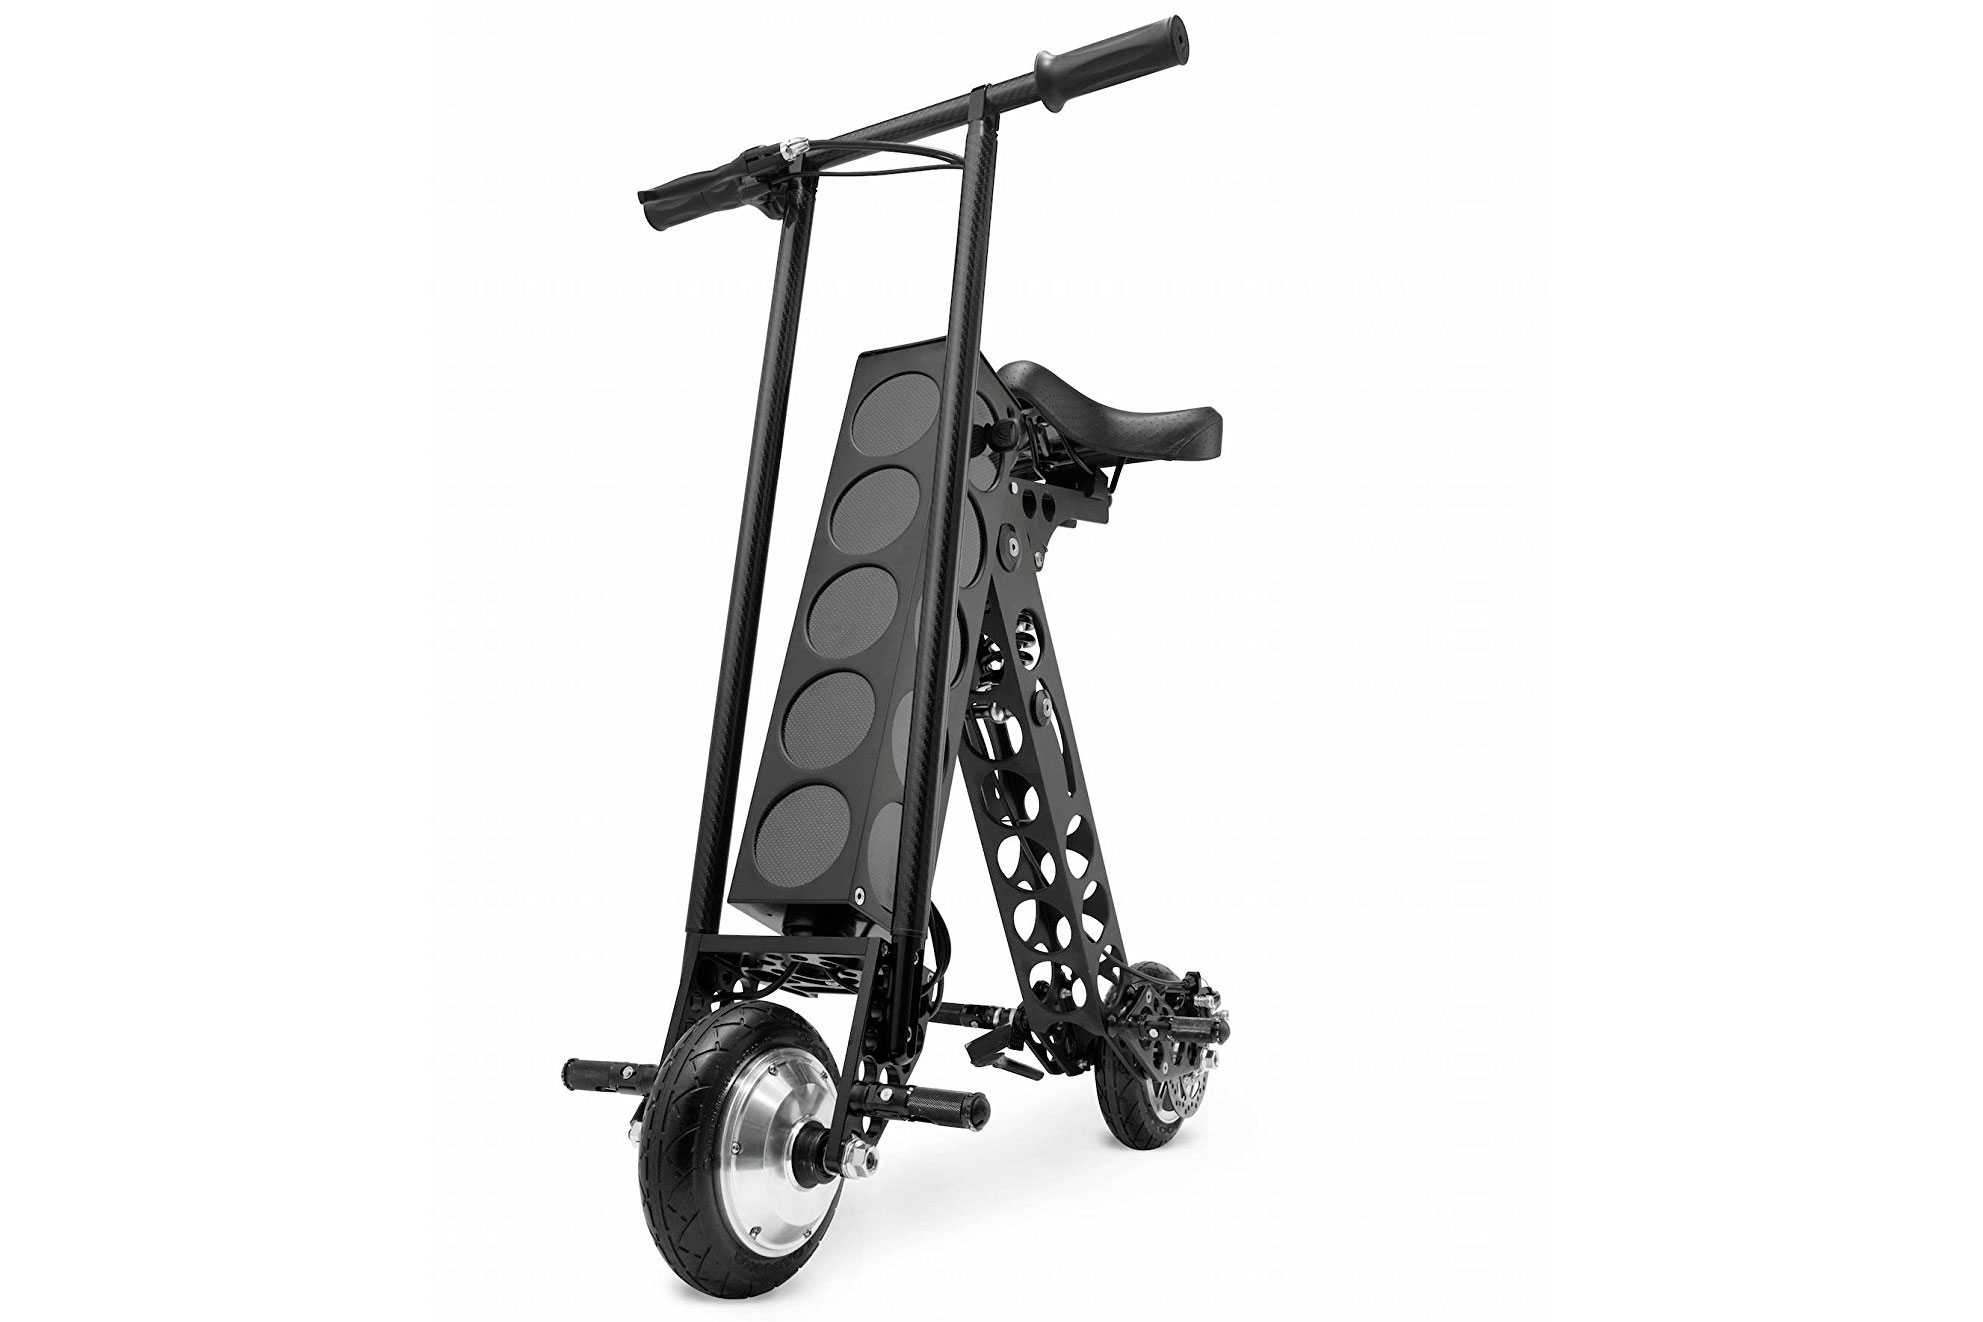 Lightweight Travel Folding Mobility Scooter